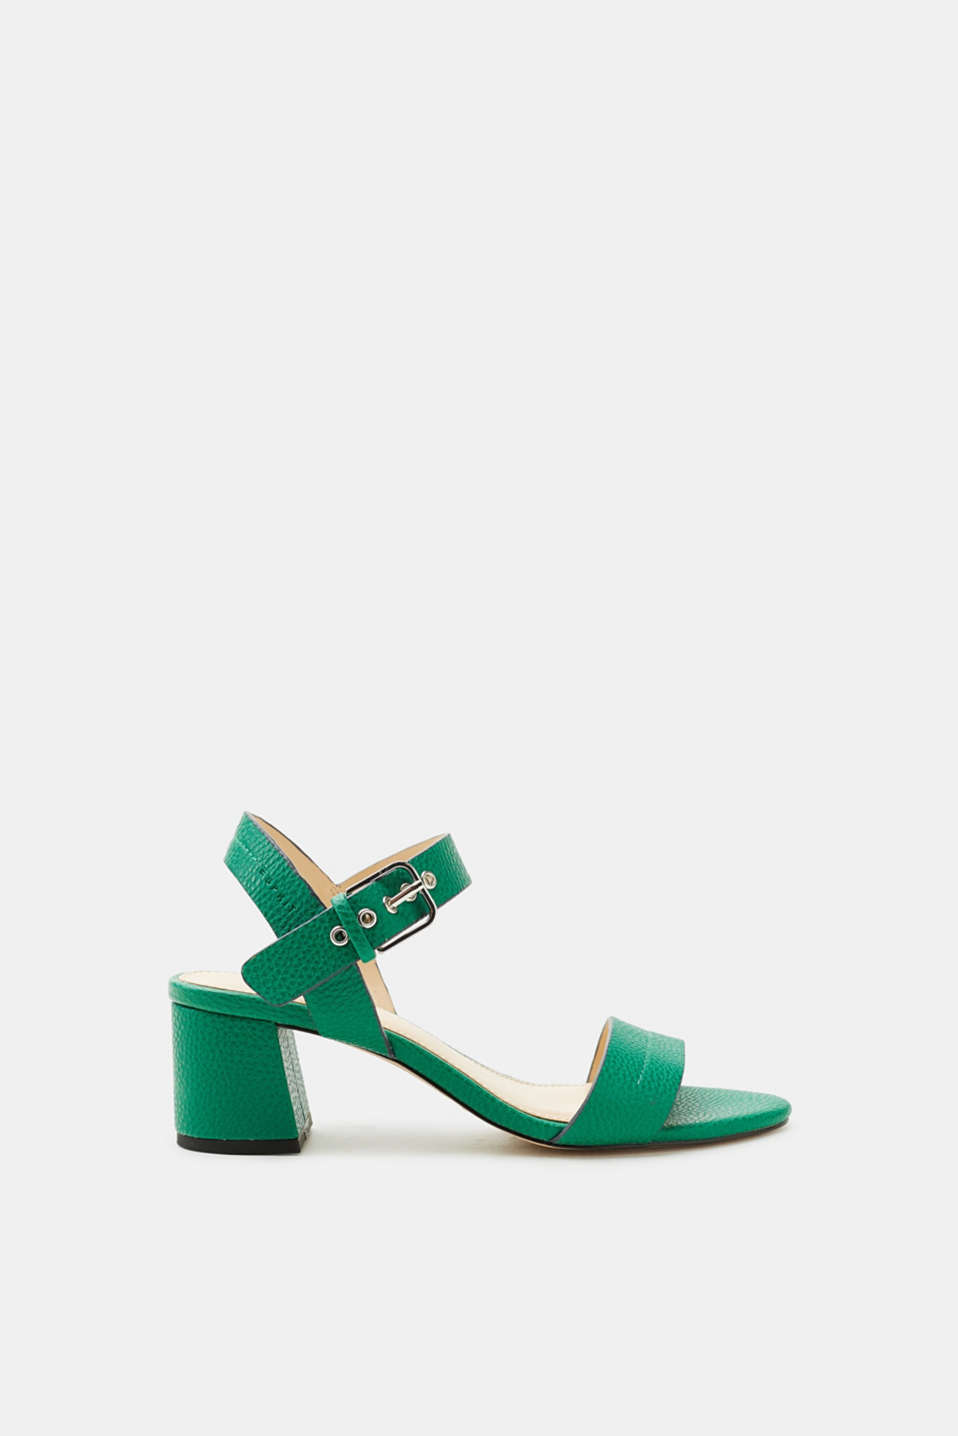 The stunning summer colour and modern shape with a block heel make these sandals a summer favourite.